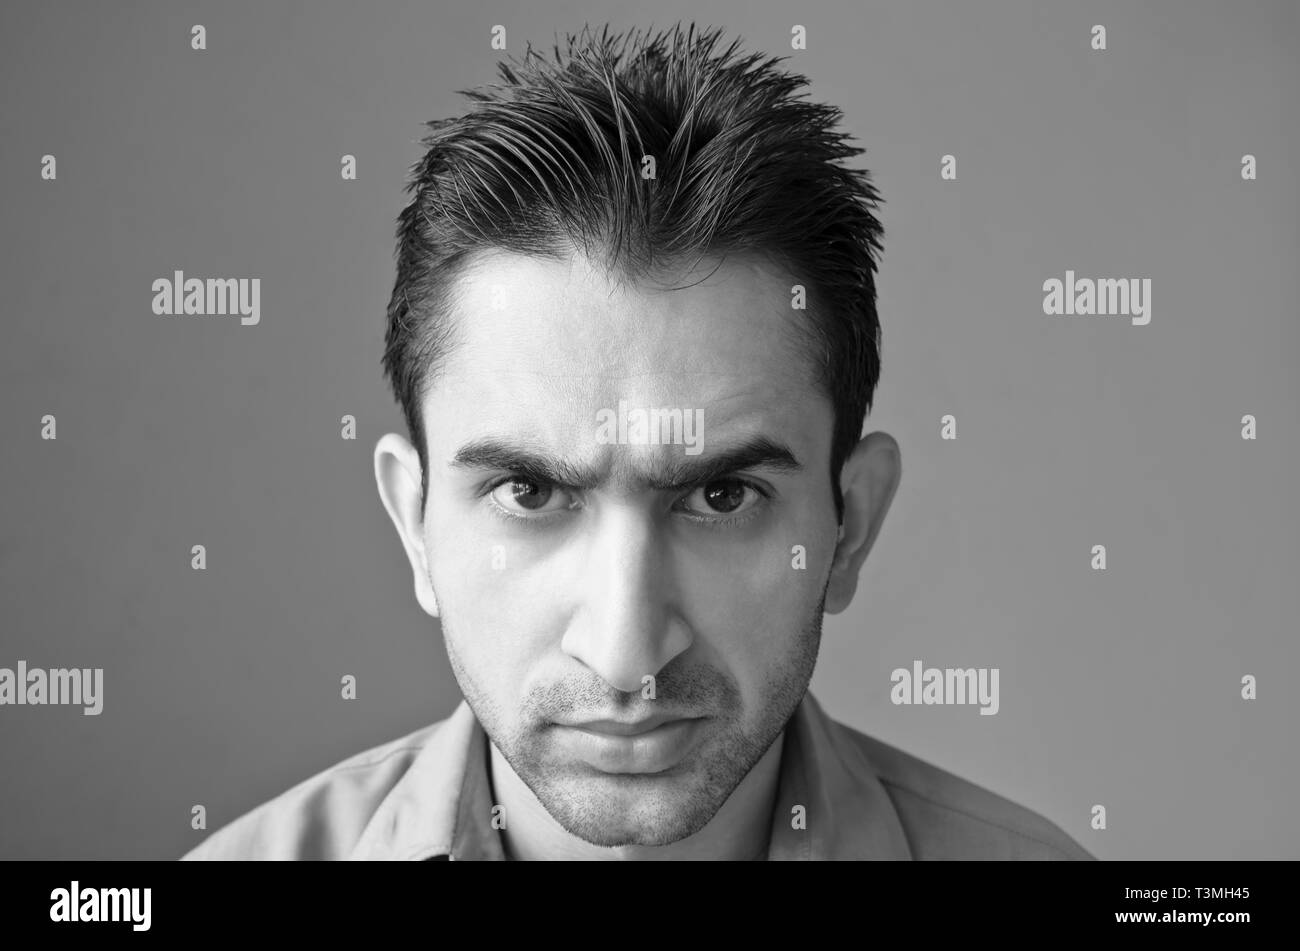 Black and white portrait of angry young man - Stock Image